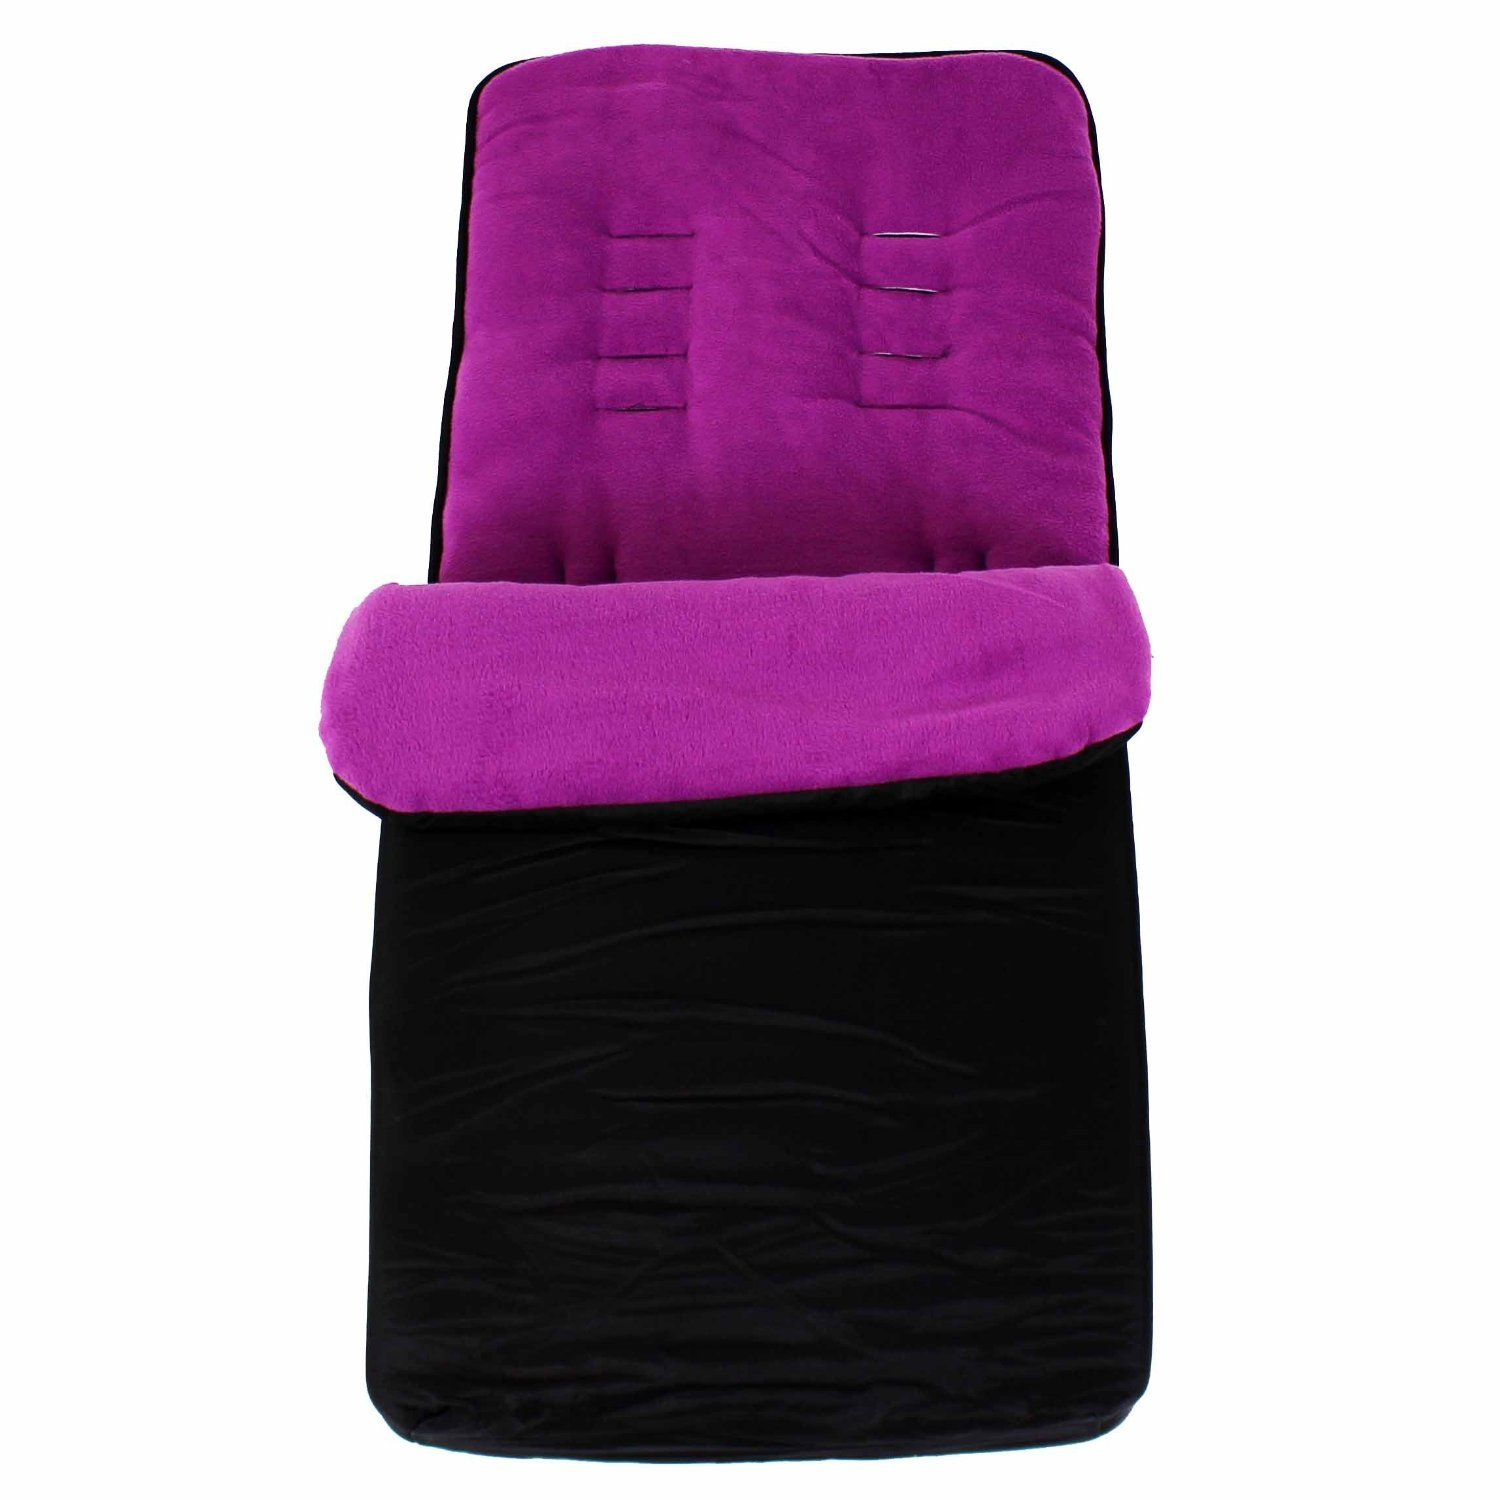 Baby Travel Essential Deluxe Snug Footmuff Cosytoes - Black/Plum